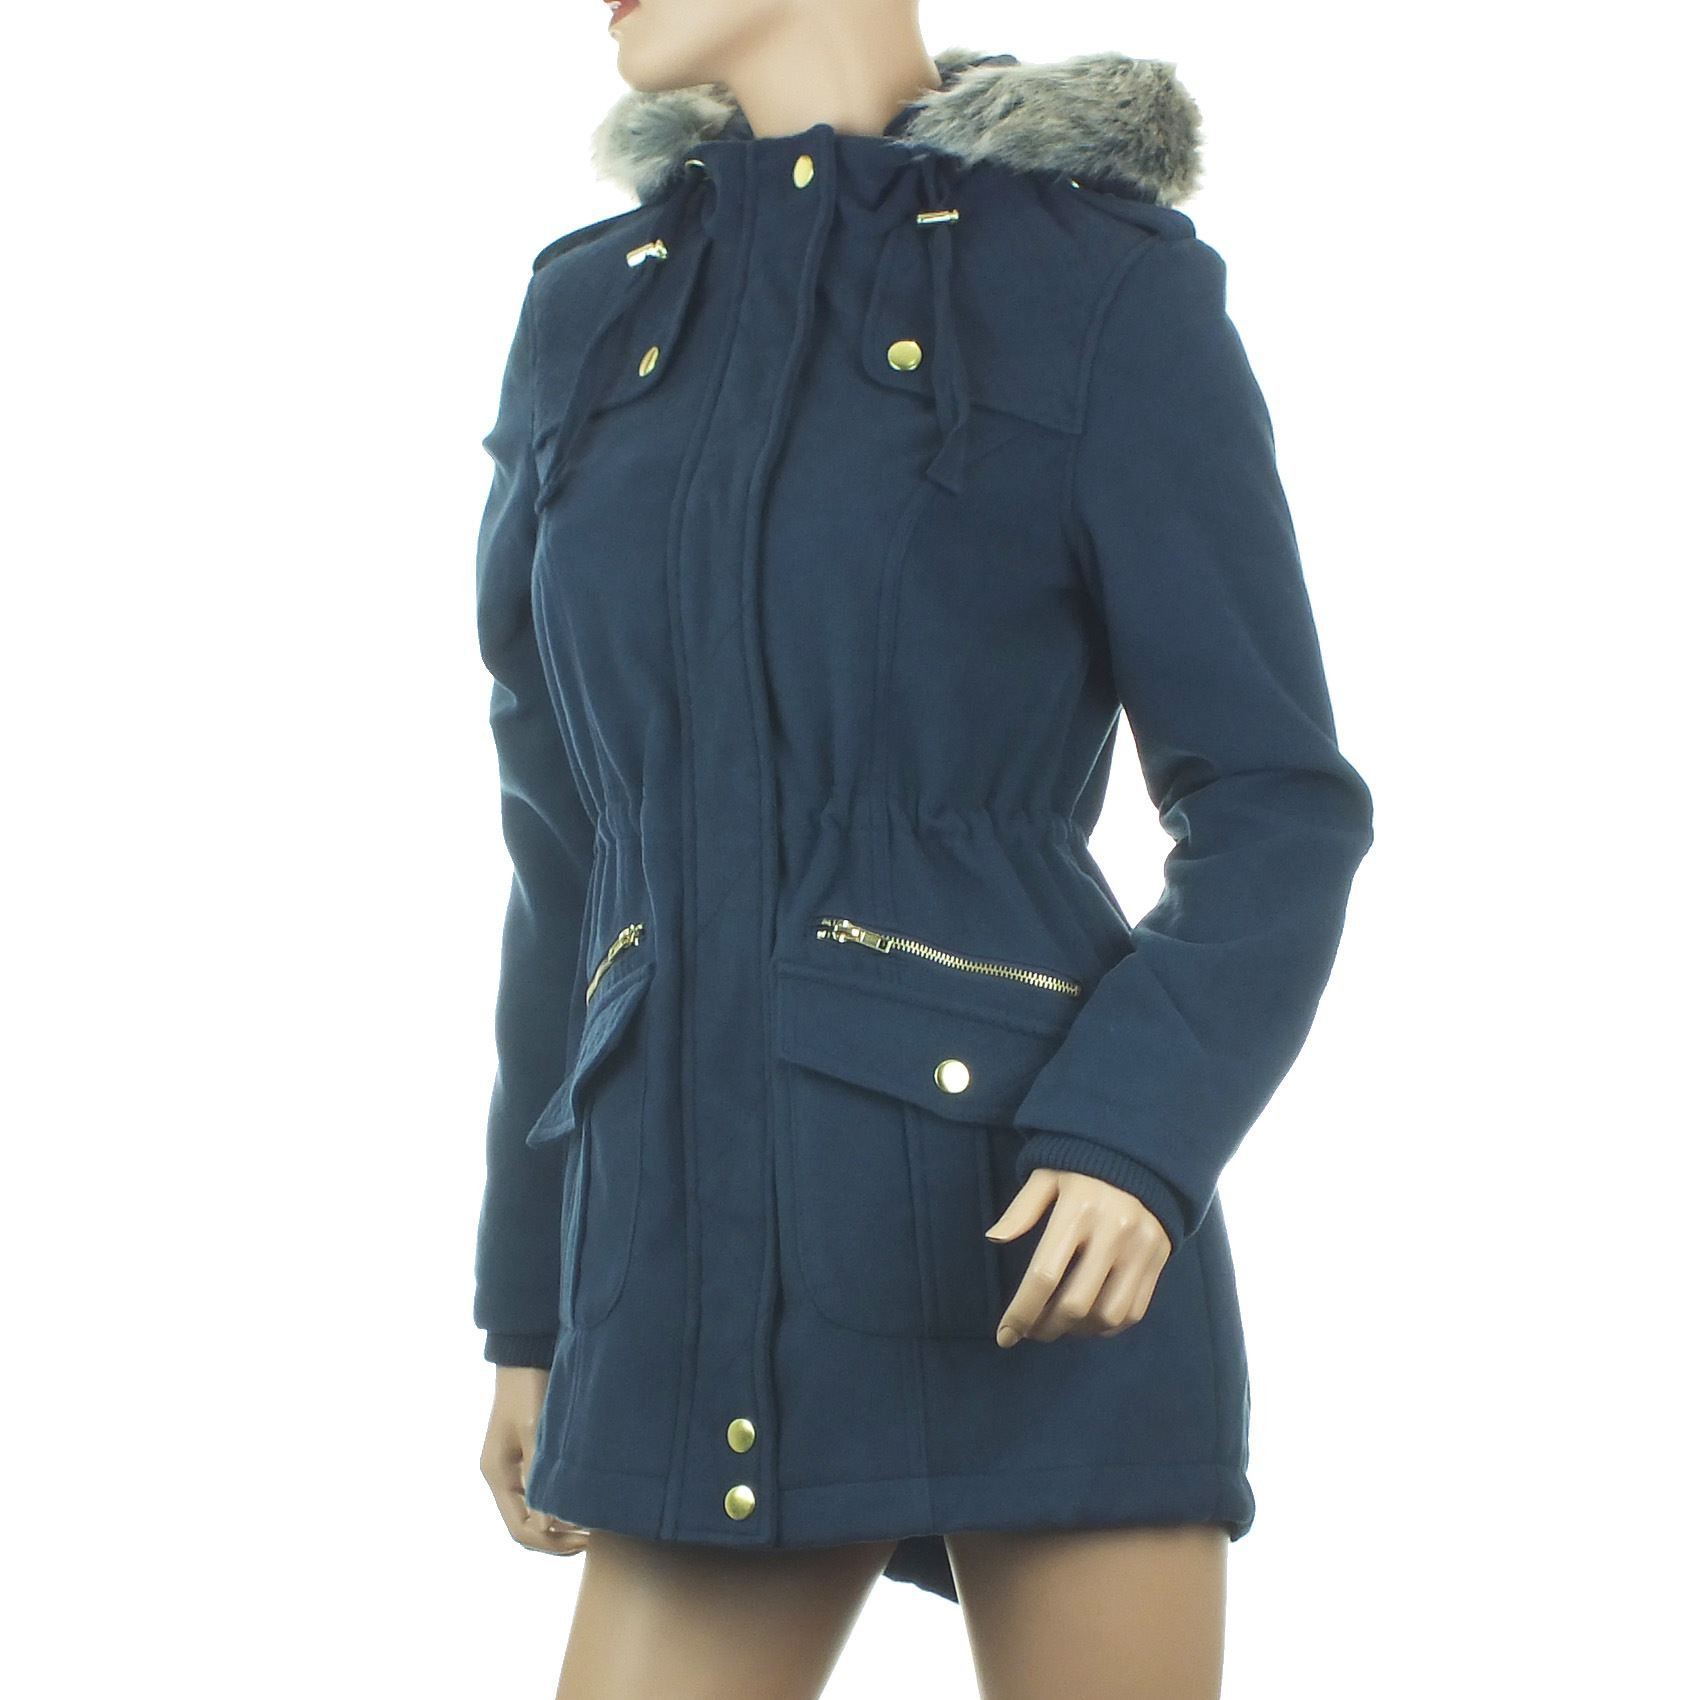 Find a great selection of coats, jackets and blazers for women at 0549sahibi.tk Shop winter coats, peacoats, raincoats, as well as trenches & blazers from brands like Topshop, Canada Goose, The North Face & more. Free shipping & returns.